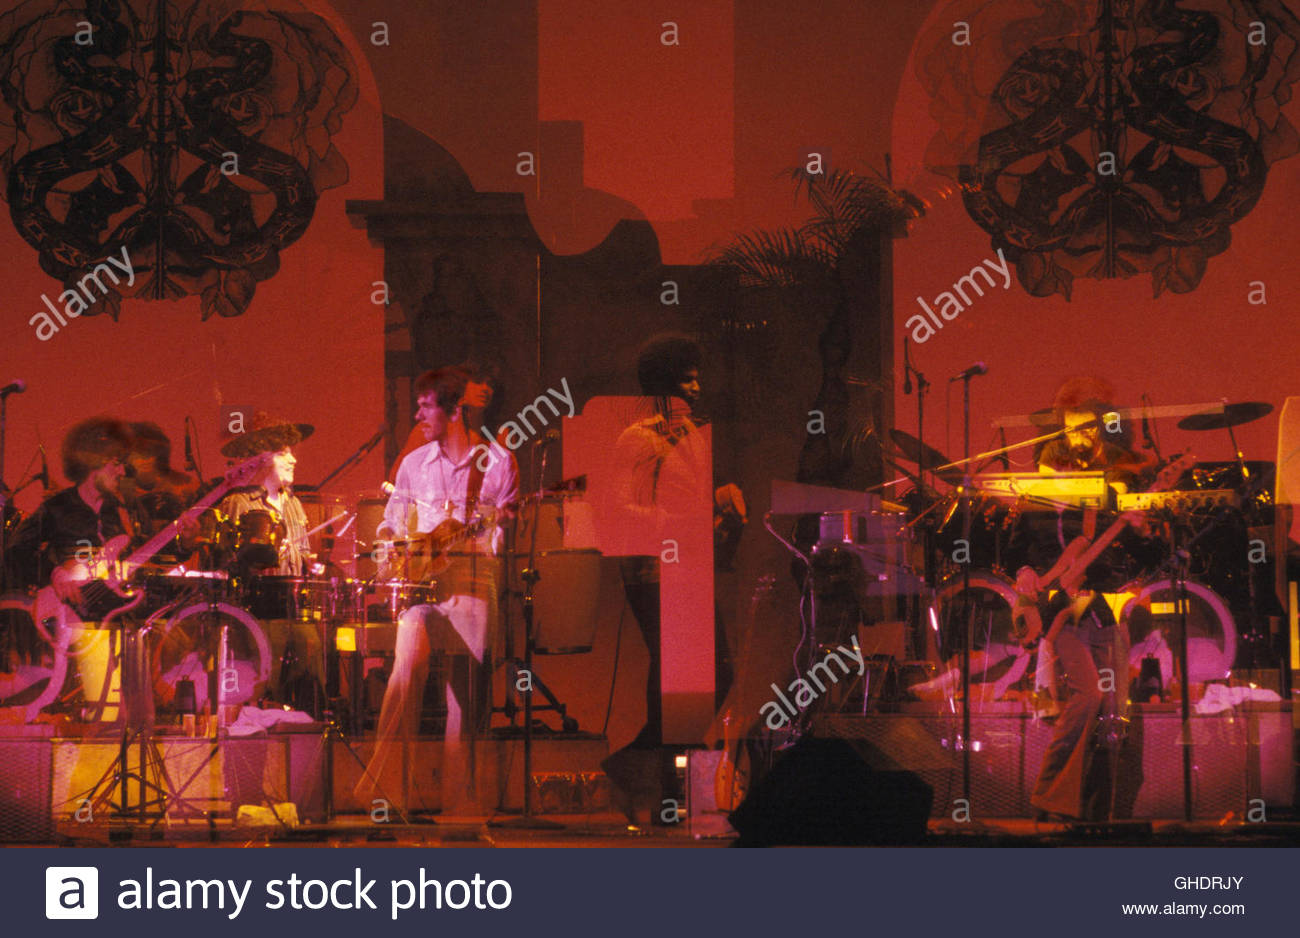 American Latin rock band Santana performing at The Palladium on March 5, 1977 in New York City. - Stock Image